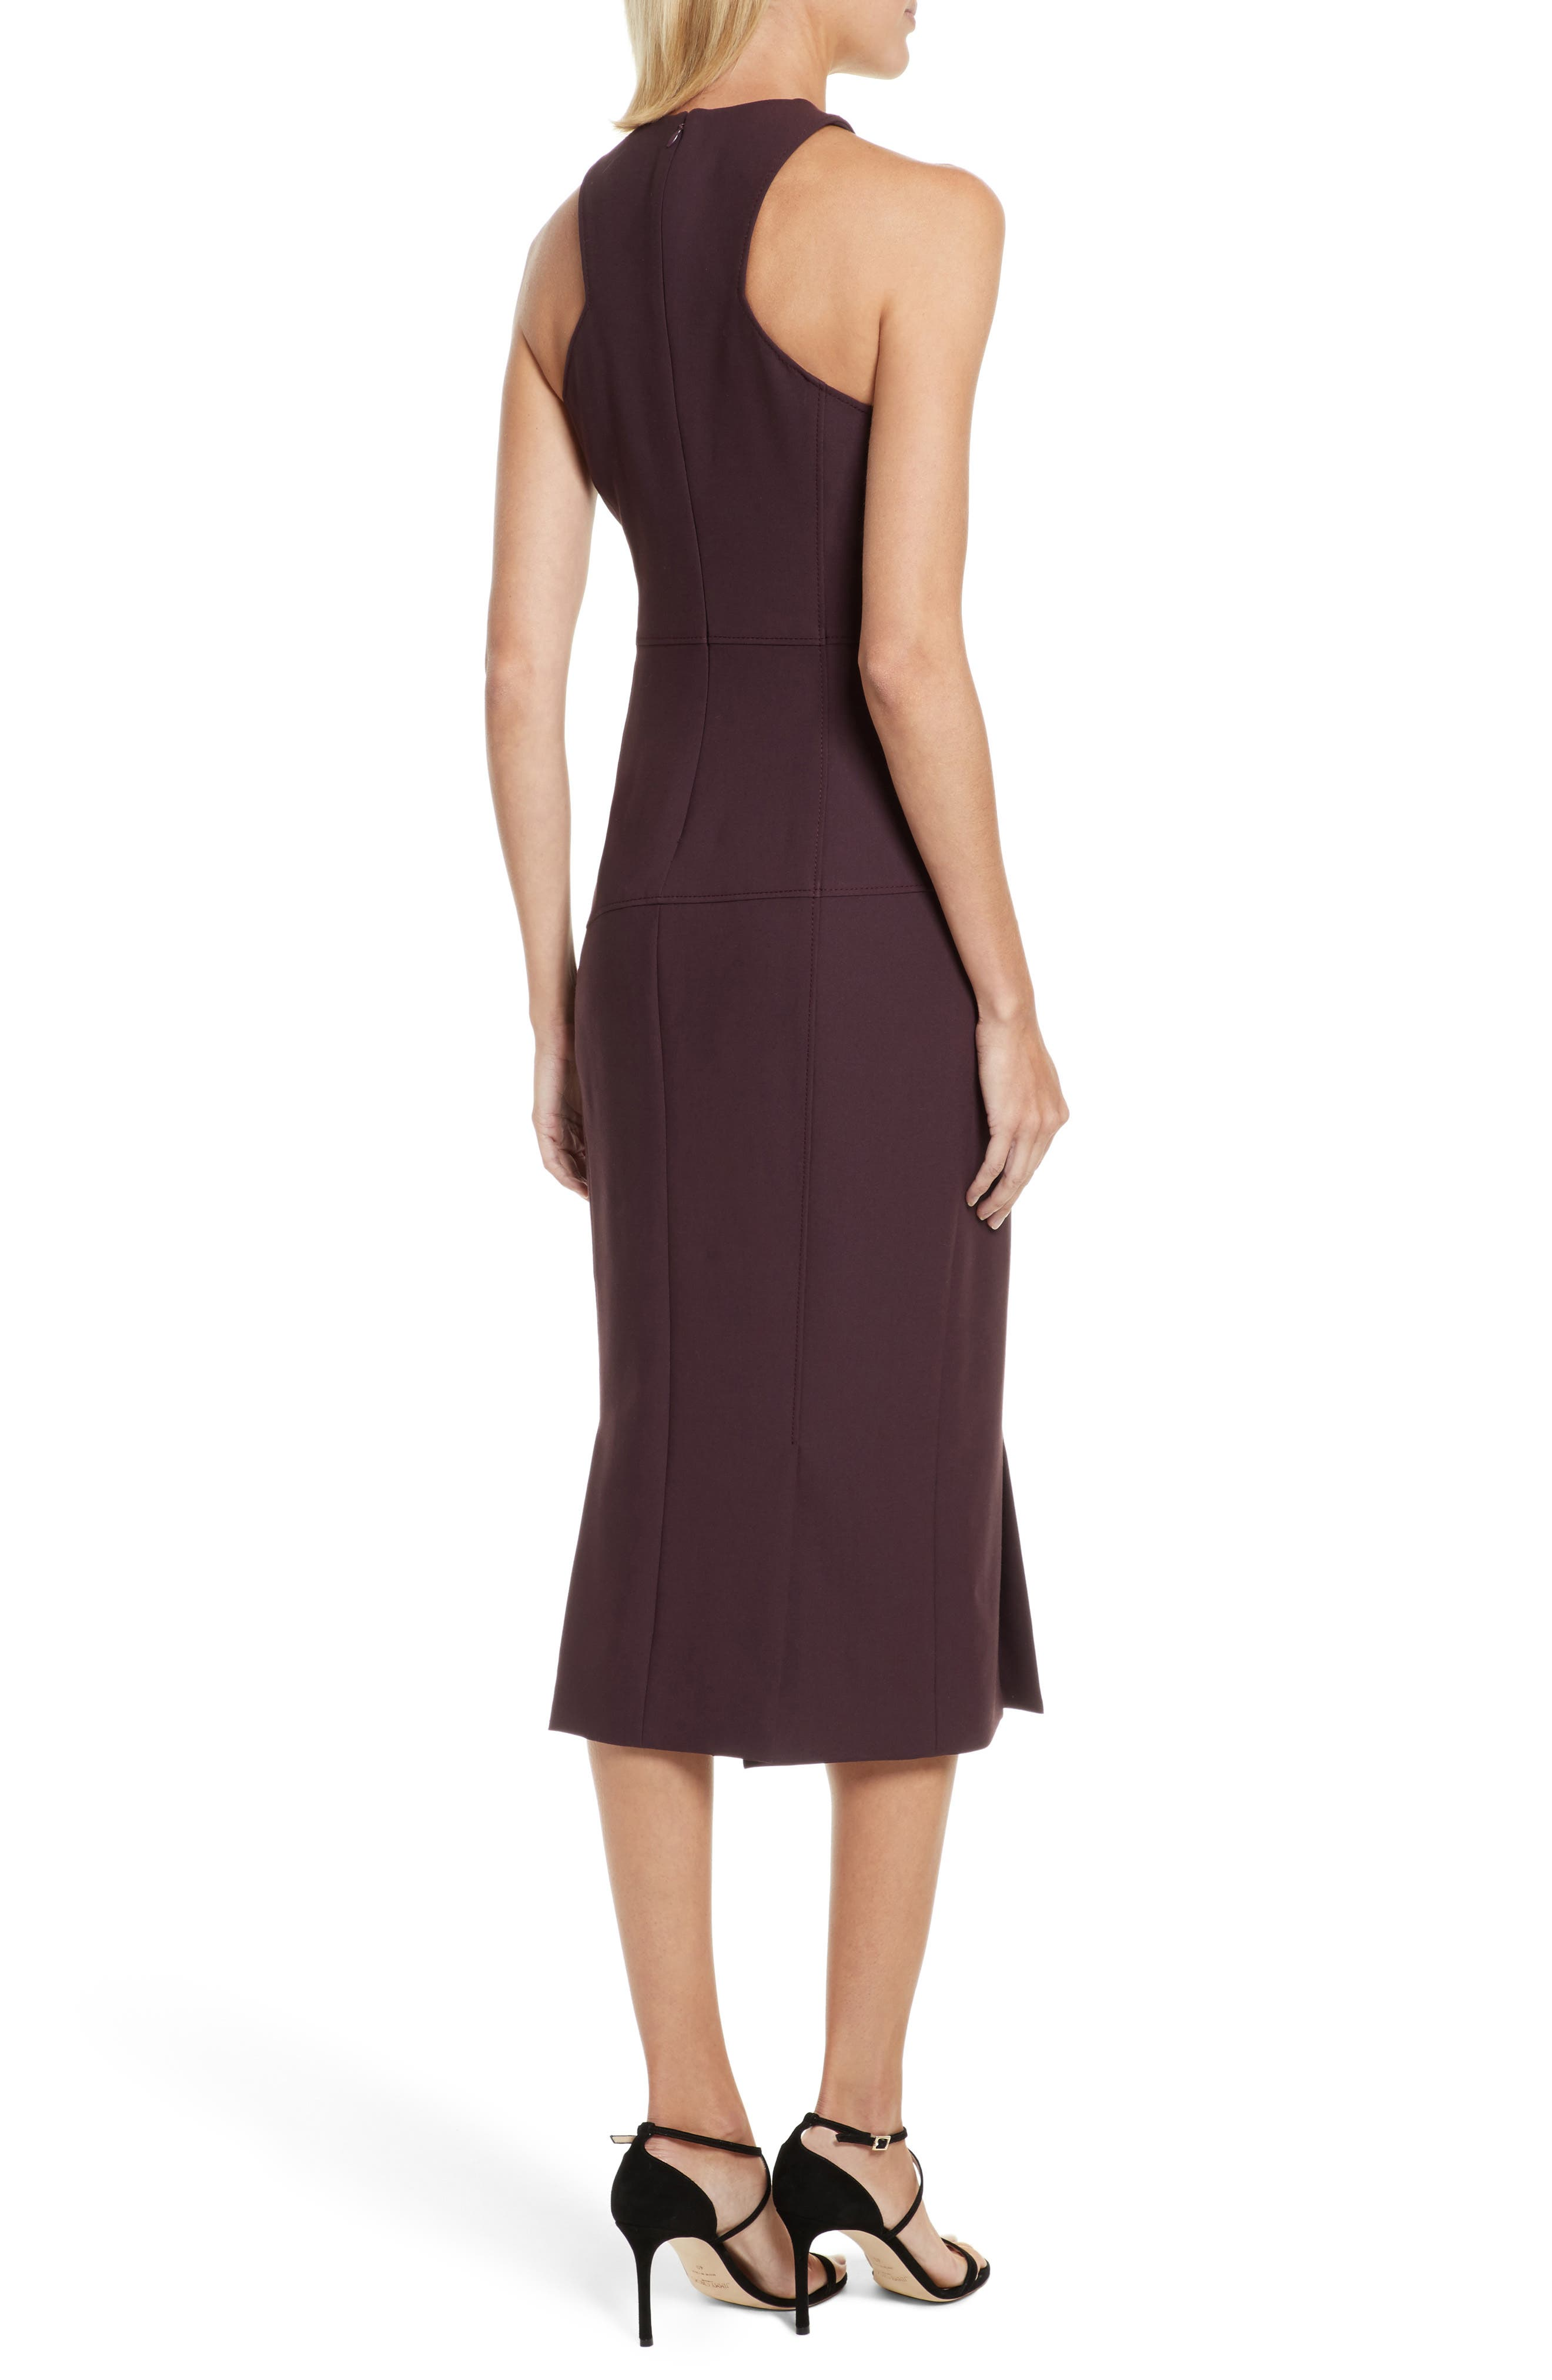 Melina Dress,                             Alternate thumbnail 2, color,                             545